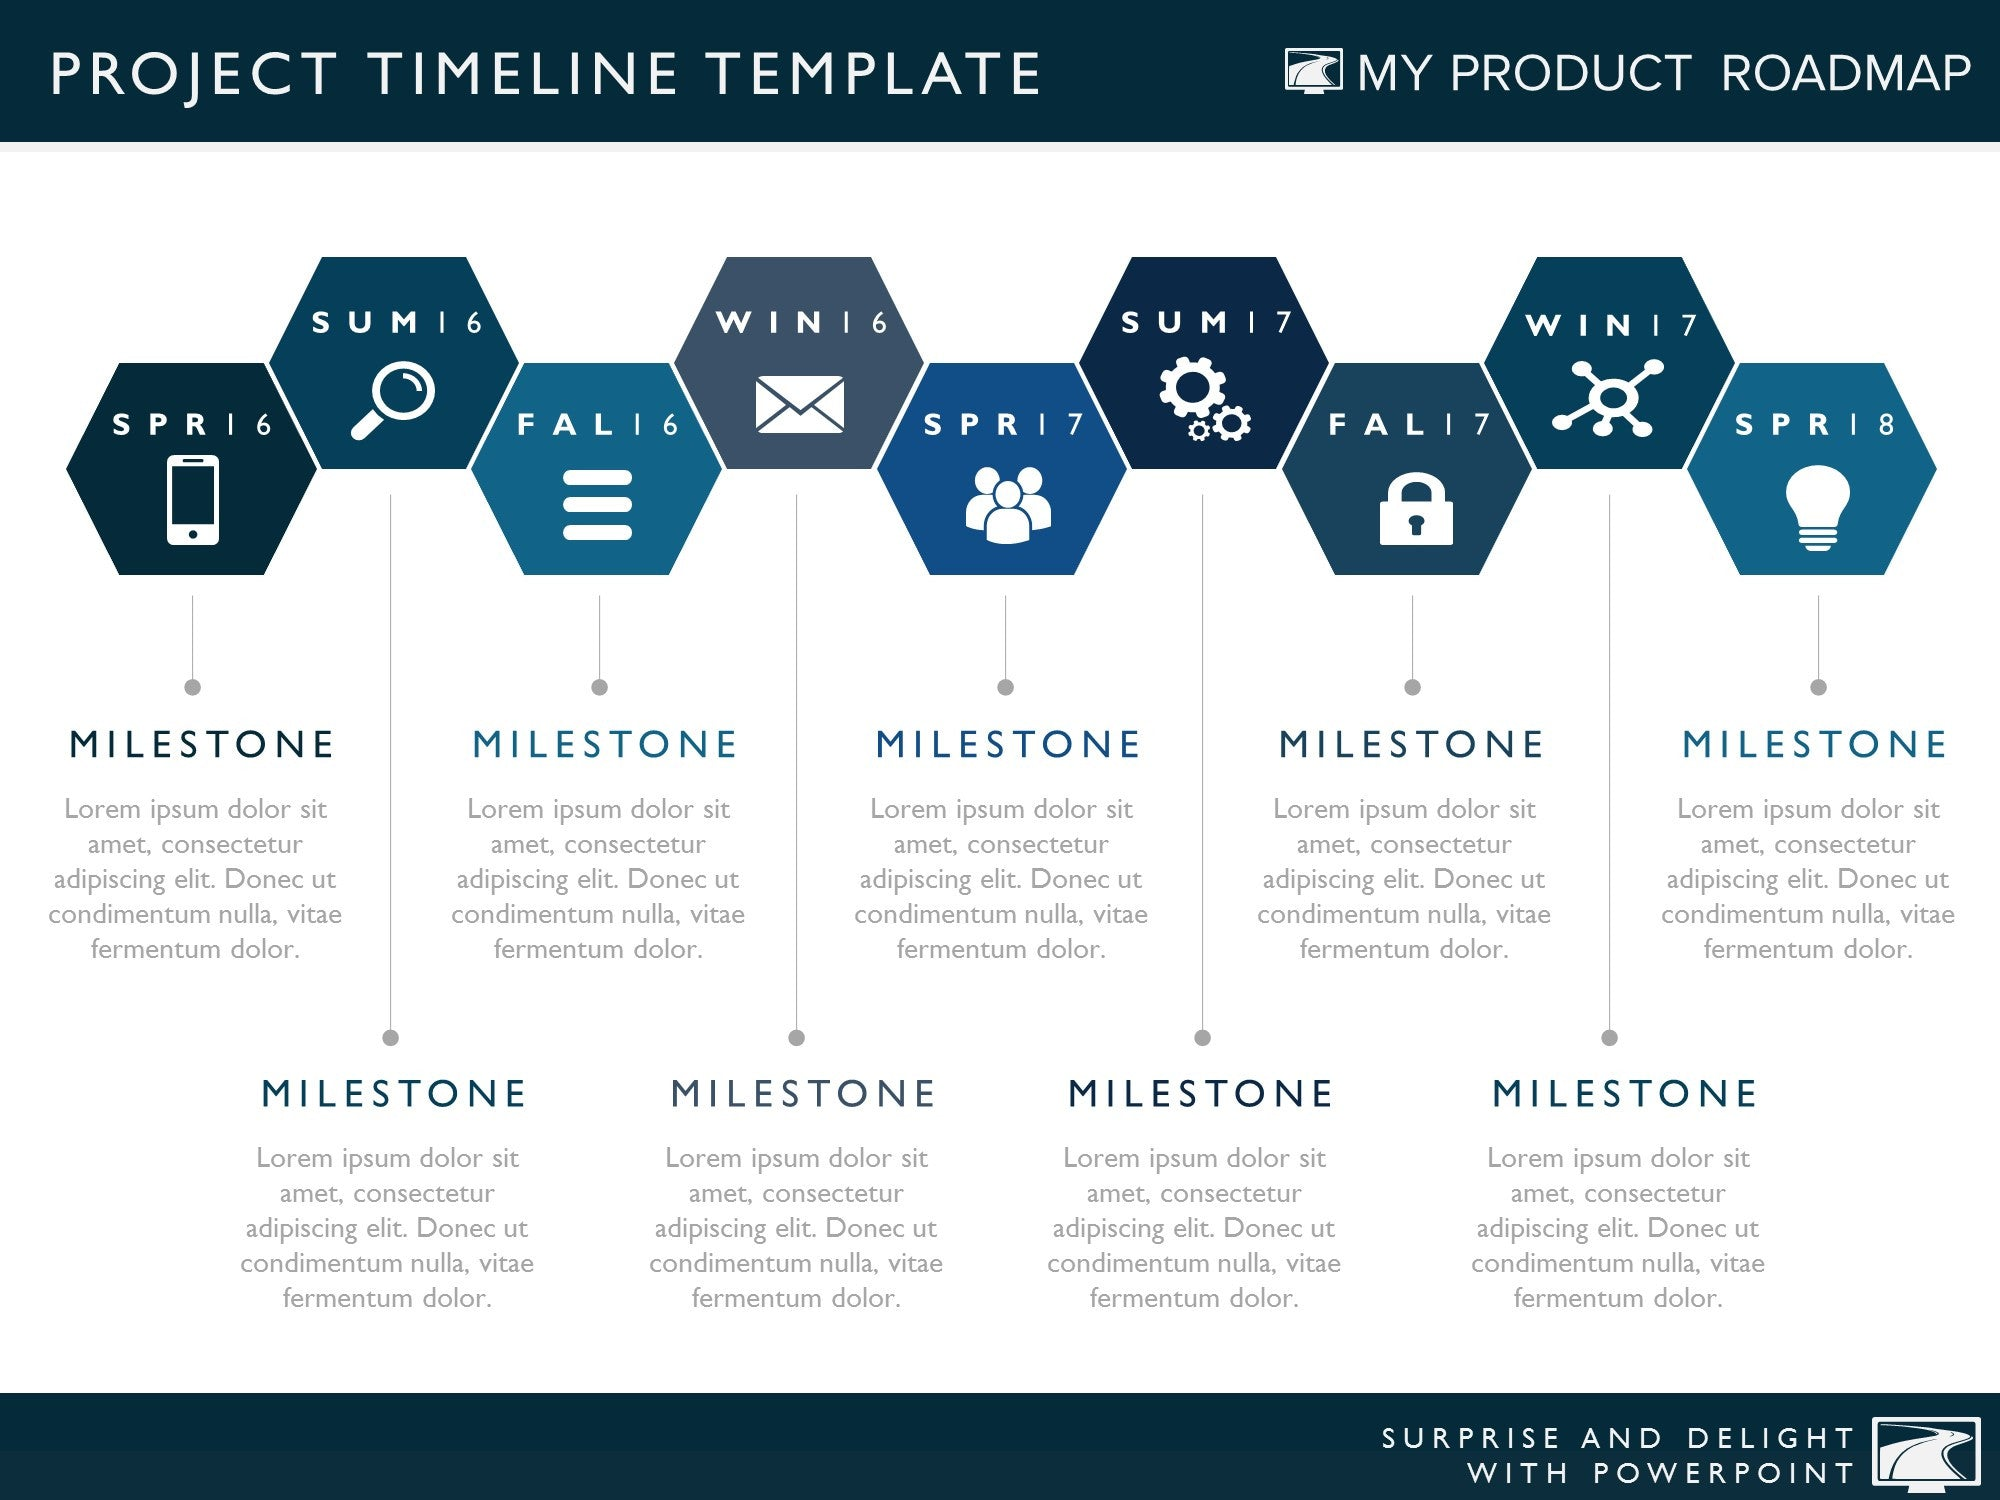 Nine Phase Project Timeline Template My Product Roadmap - Timeline roadmap template